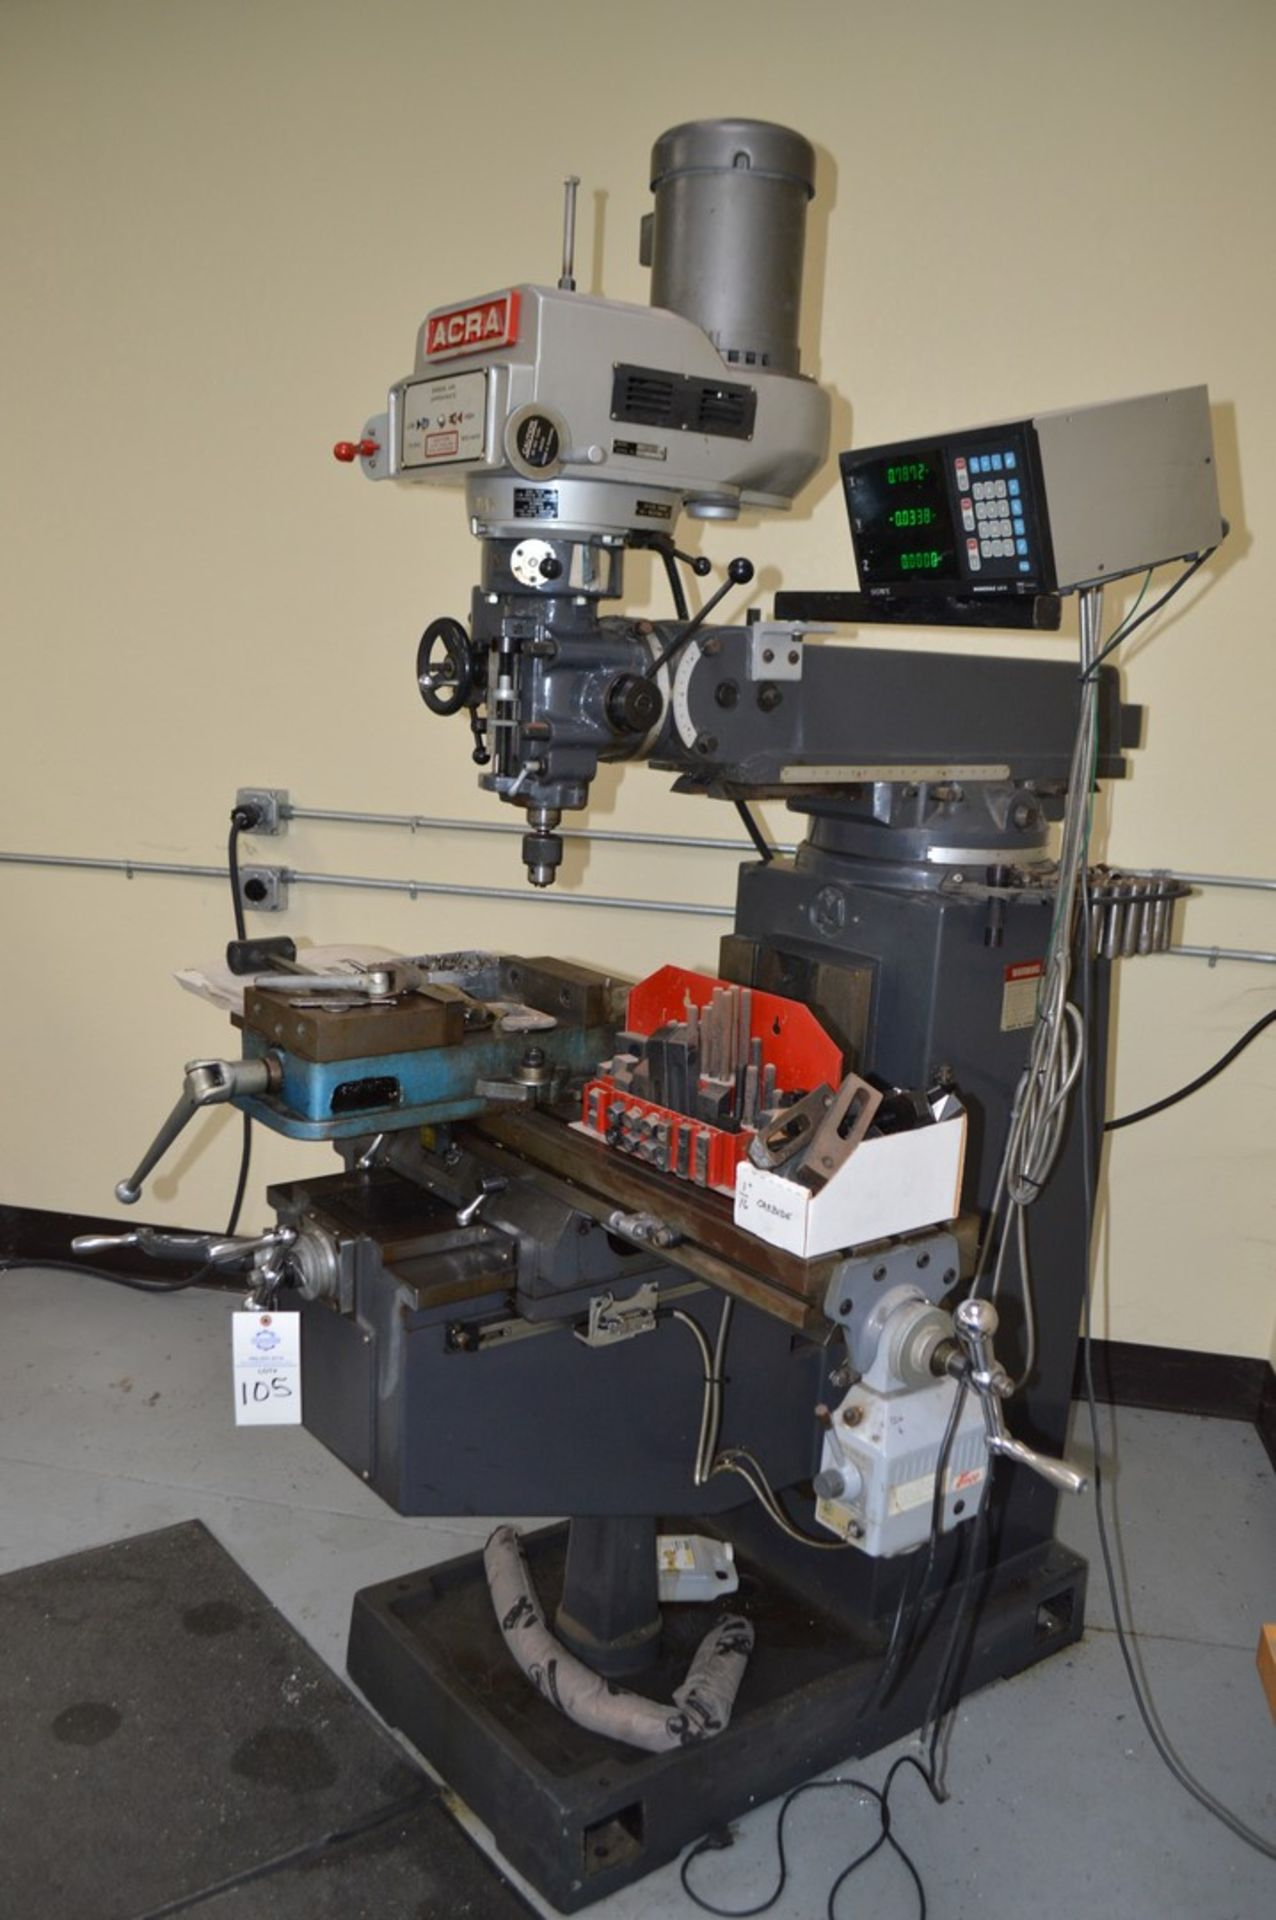 Acer 3 Axis knee mill, tilting head, 2 speed, sony magnescale DRO, Milling setup set, table - Image 8 of 10